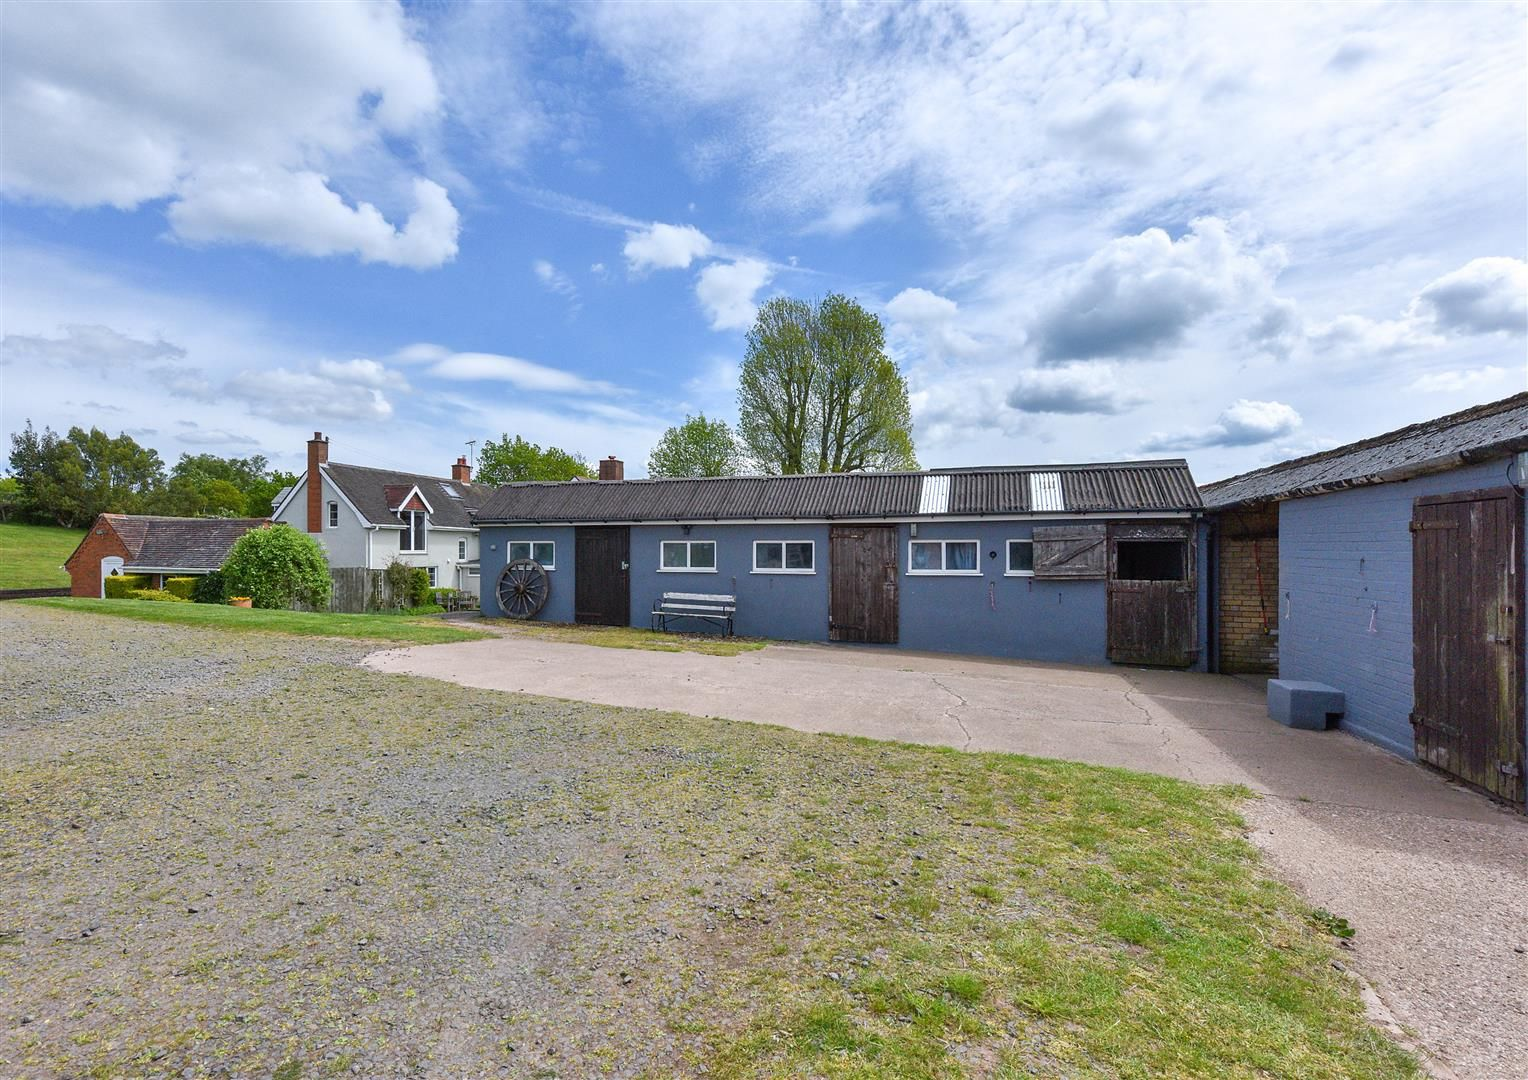 5 bed detached for sale in Clent  - Property Image 34